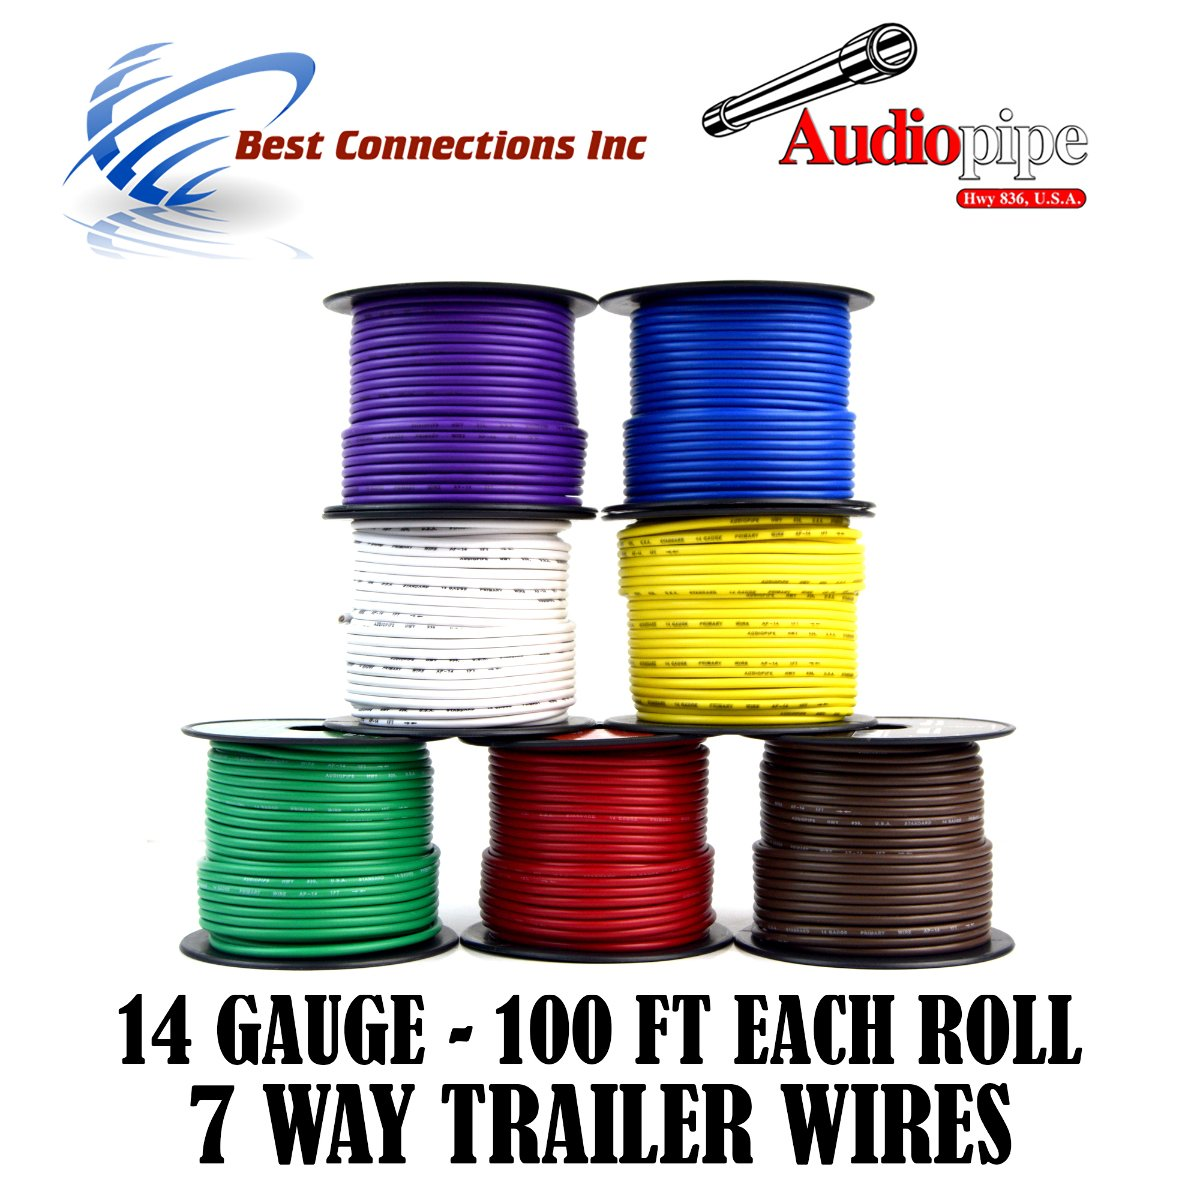 Trailer Light Cable Wiring For Harness 100ft spools 14 Gauge 7 Wire 7 colors by Best Connections